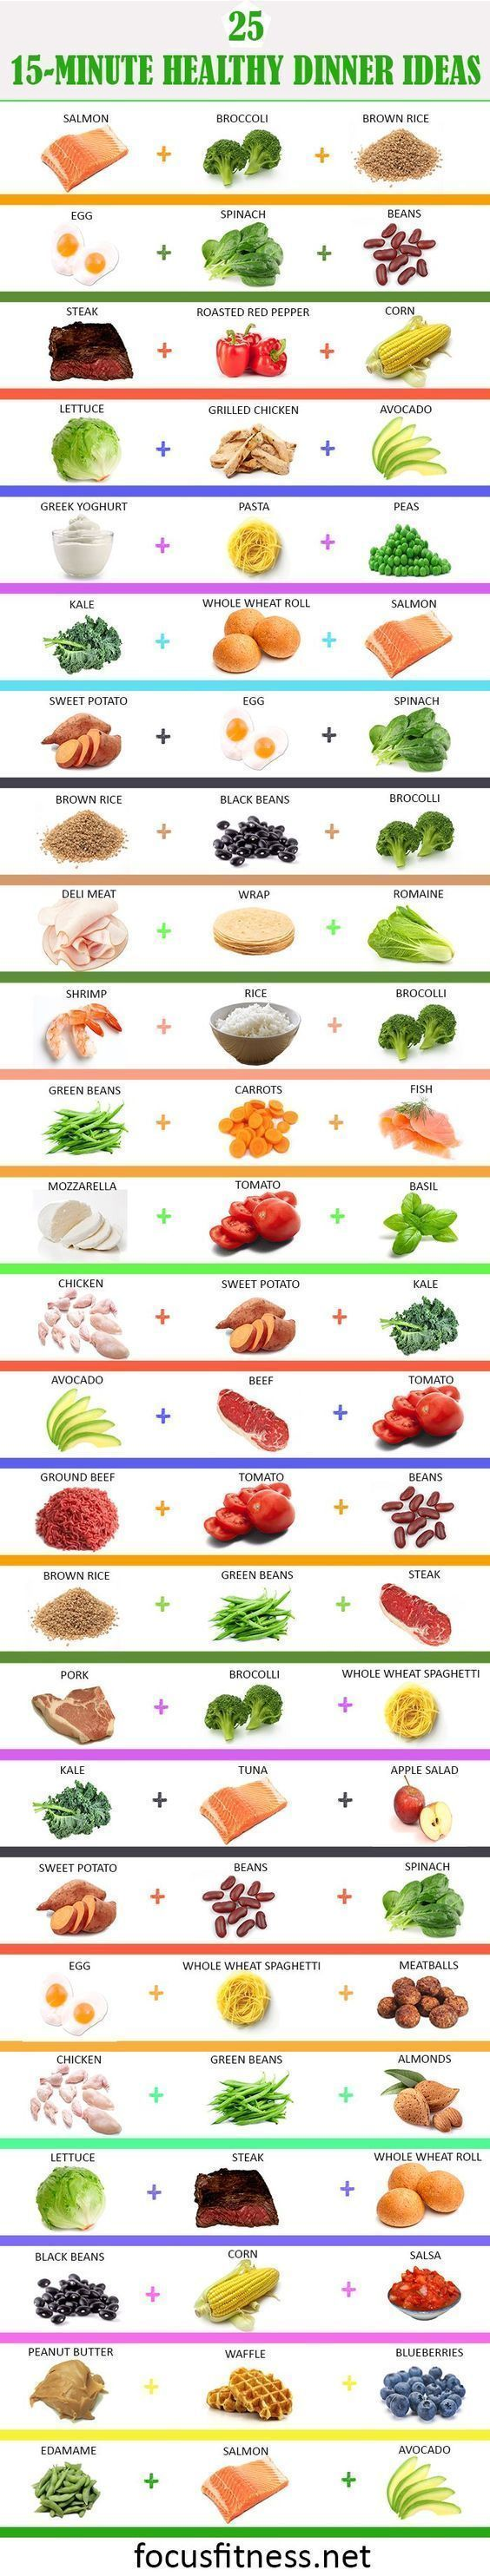 Feast clipart healthy diet. Best eating recipes